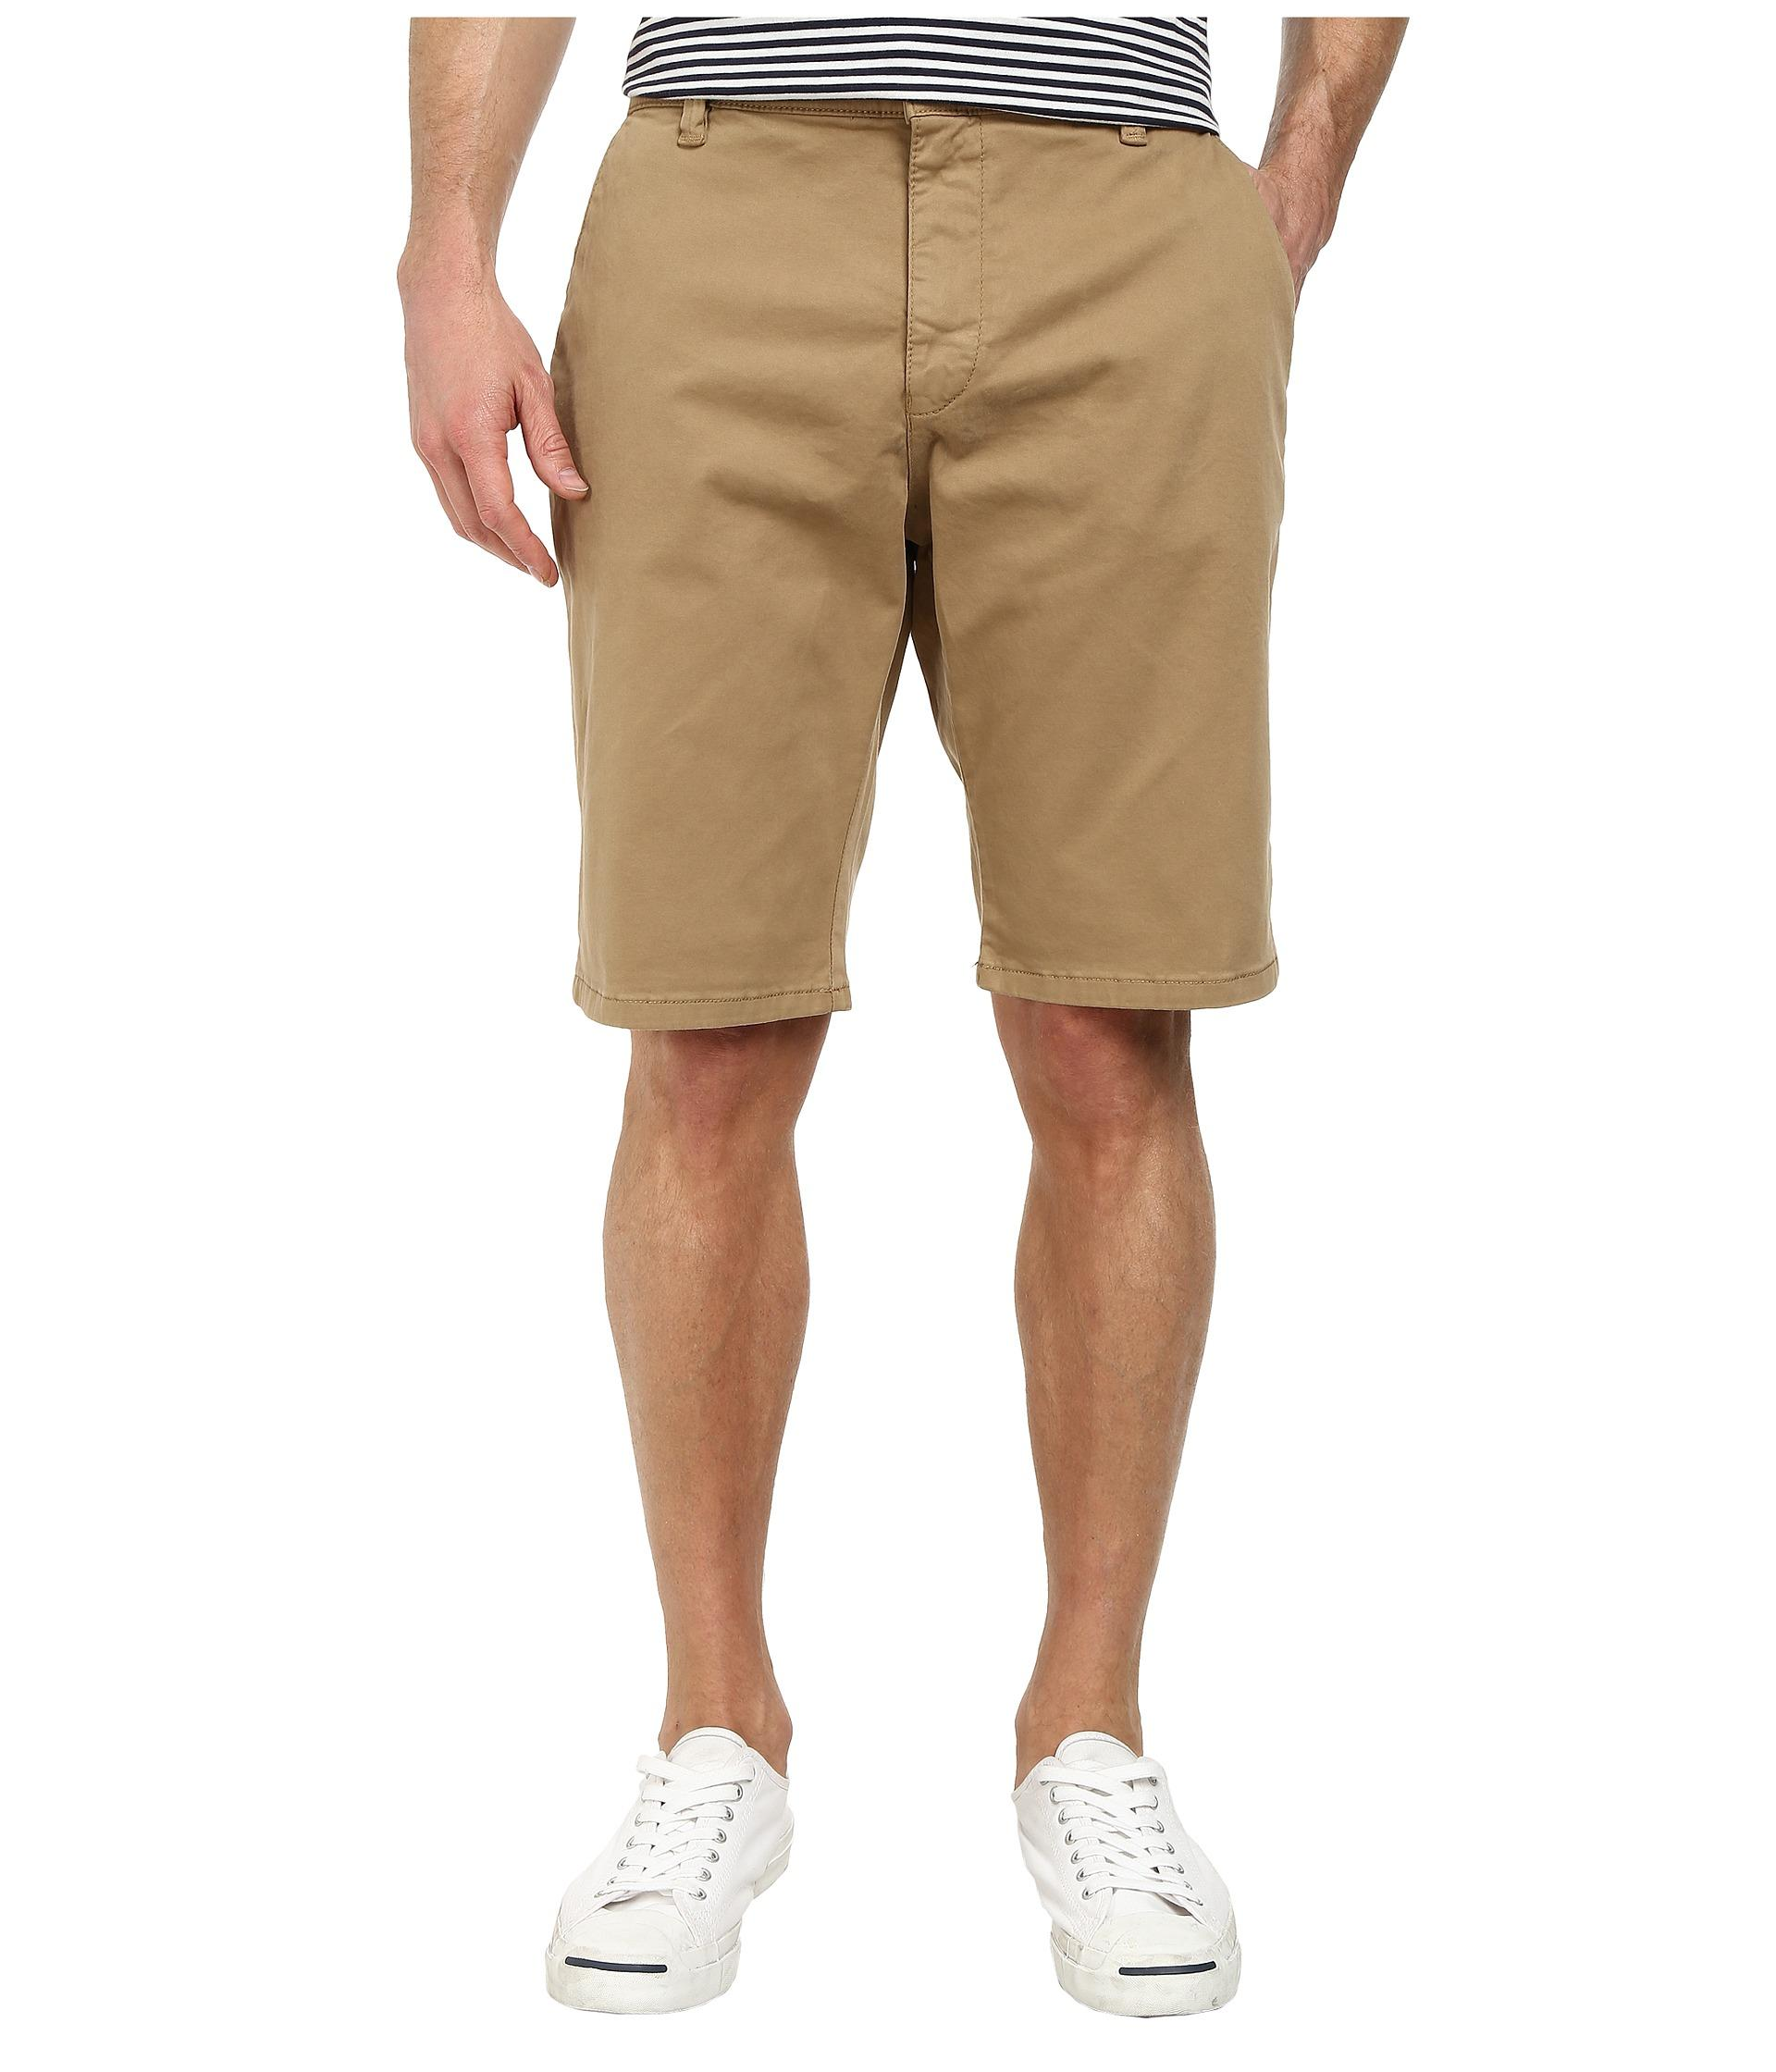 Lyst - Mavi jeans Jacob Shorts in Brown for Men